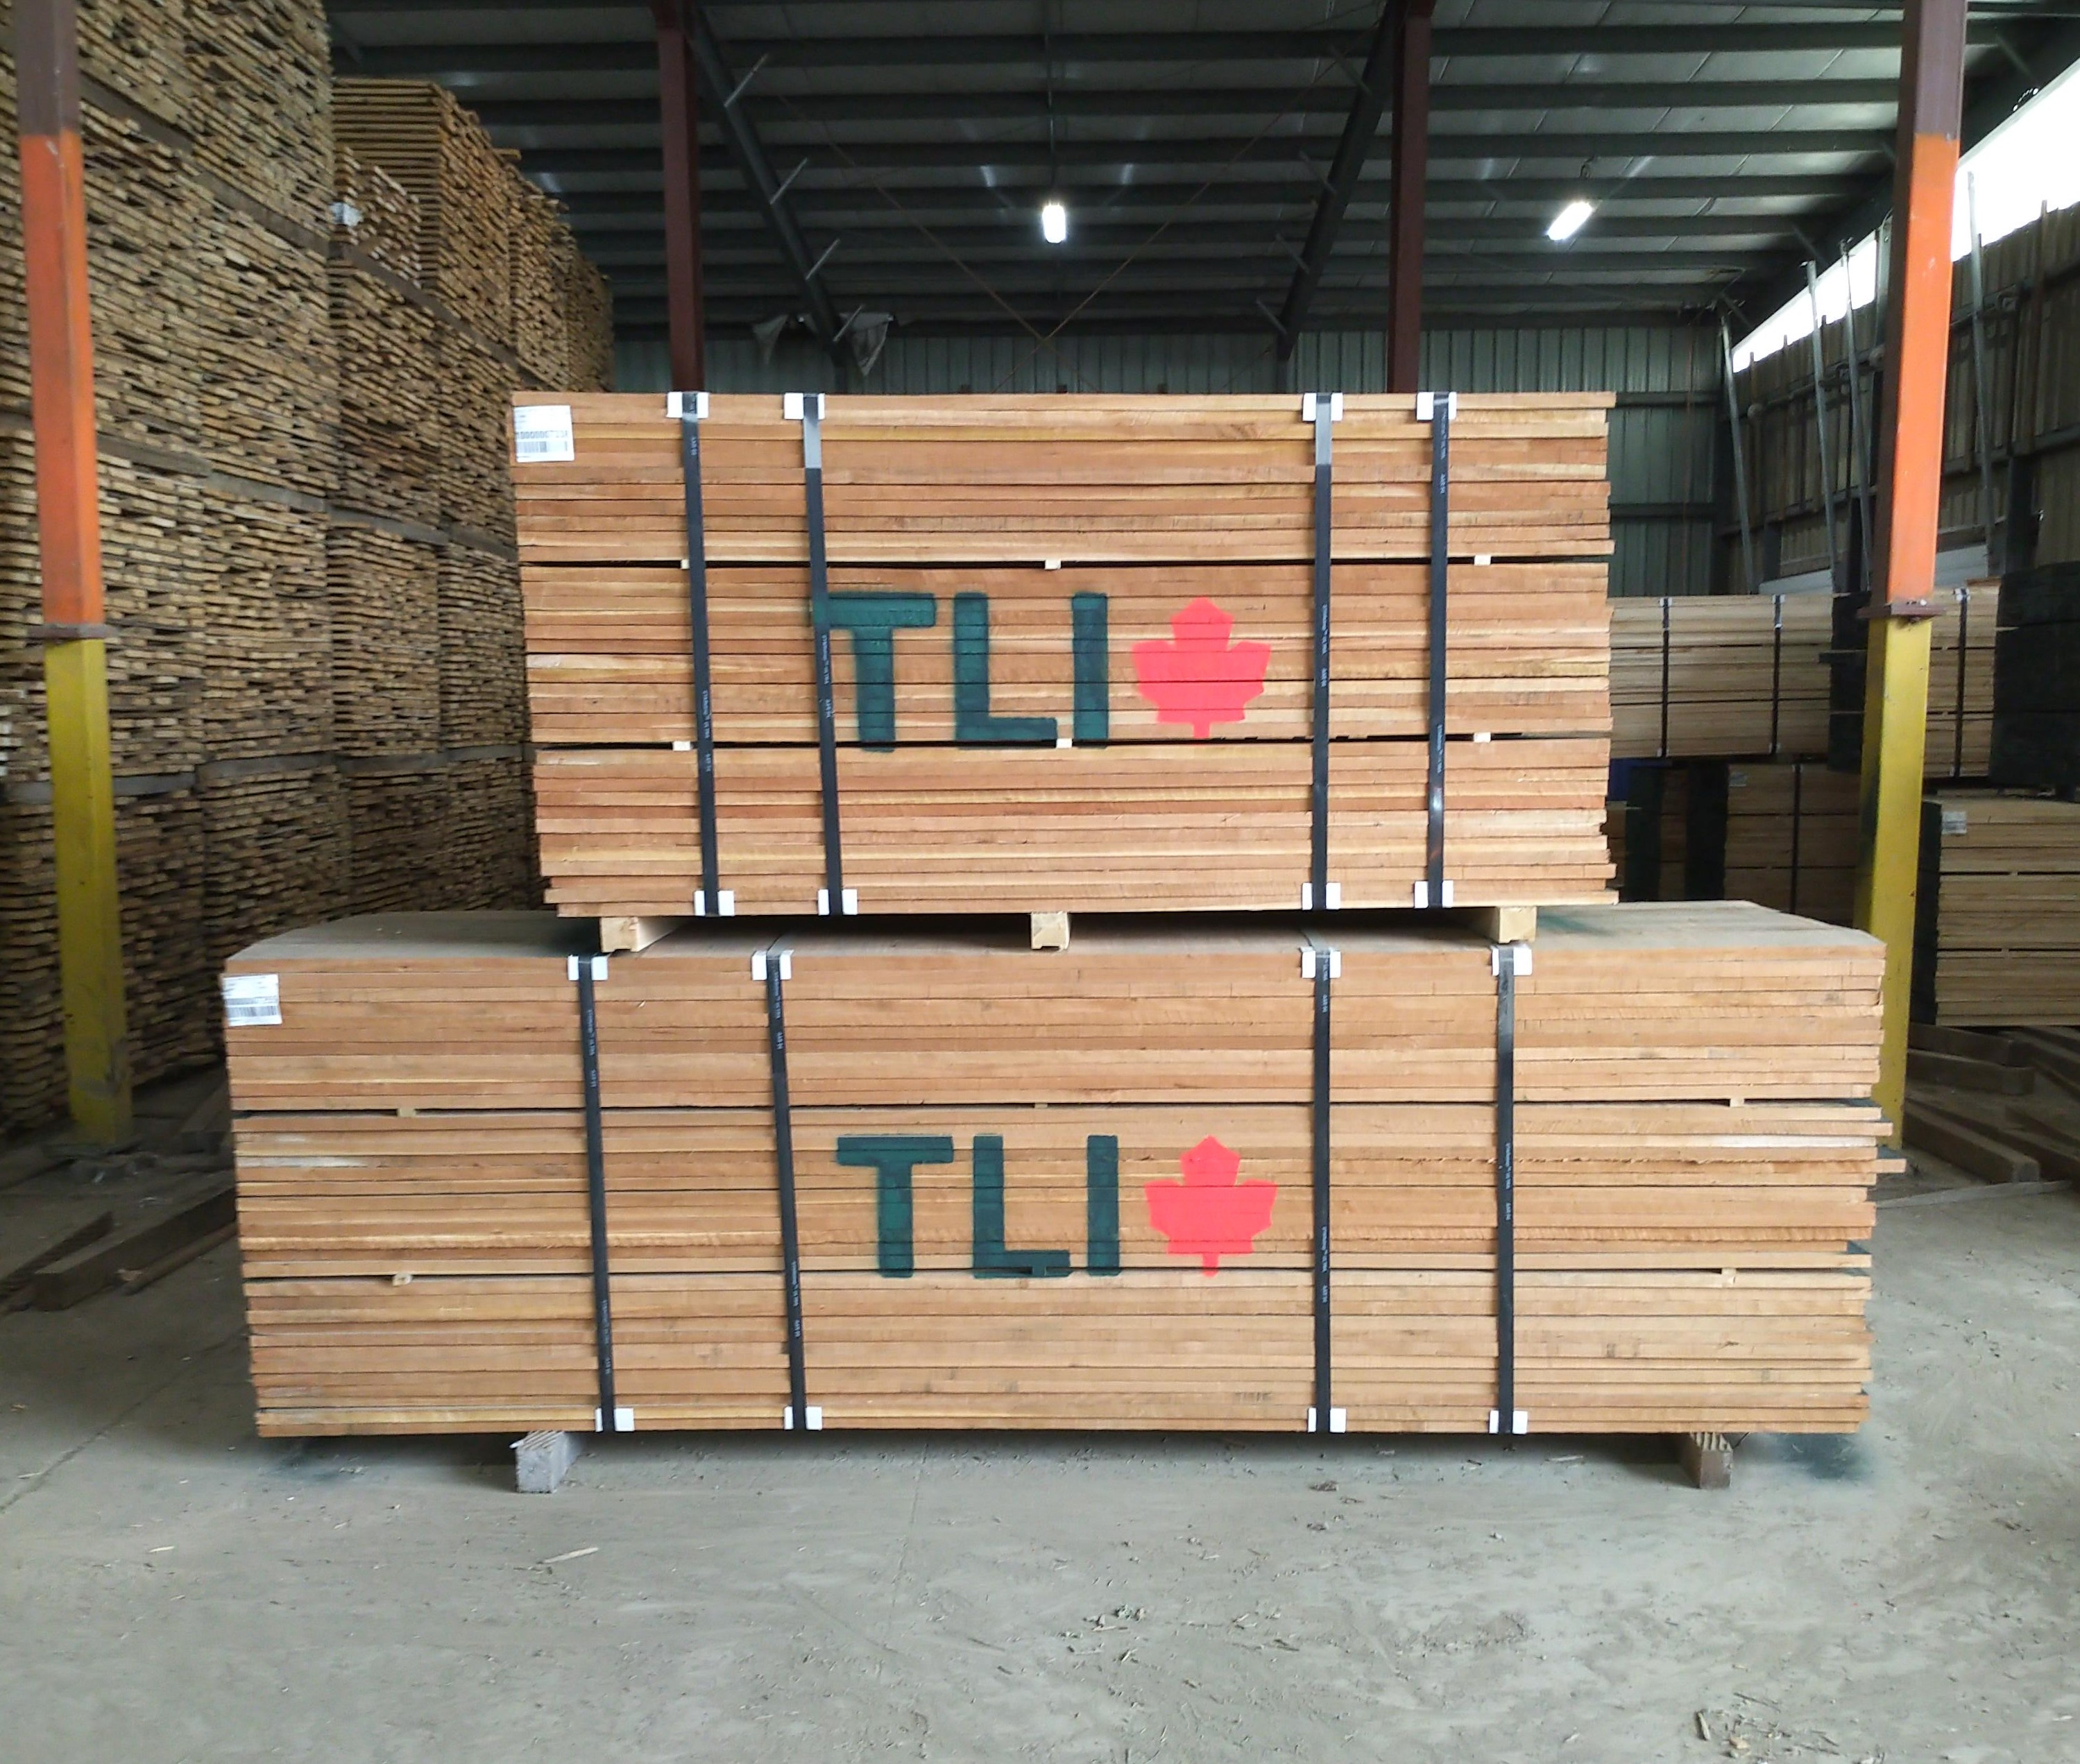 Large pallets of wood with the TLI logo painted on the side are sitting inside of a wearhouse